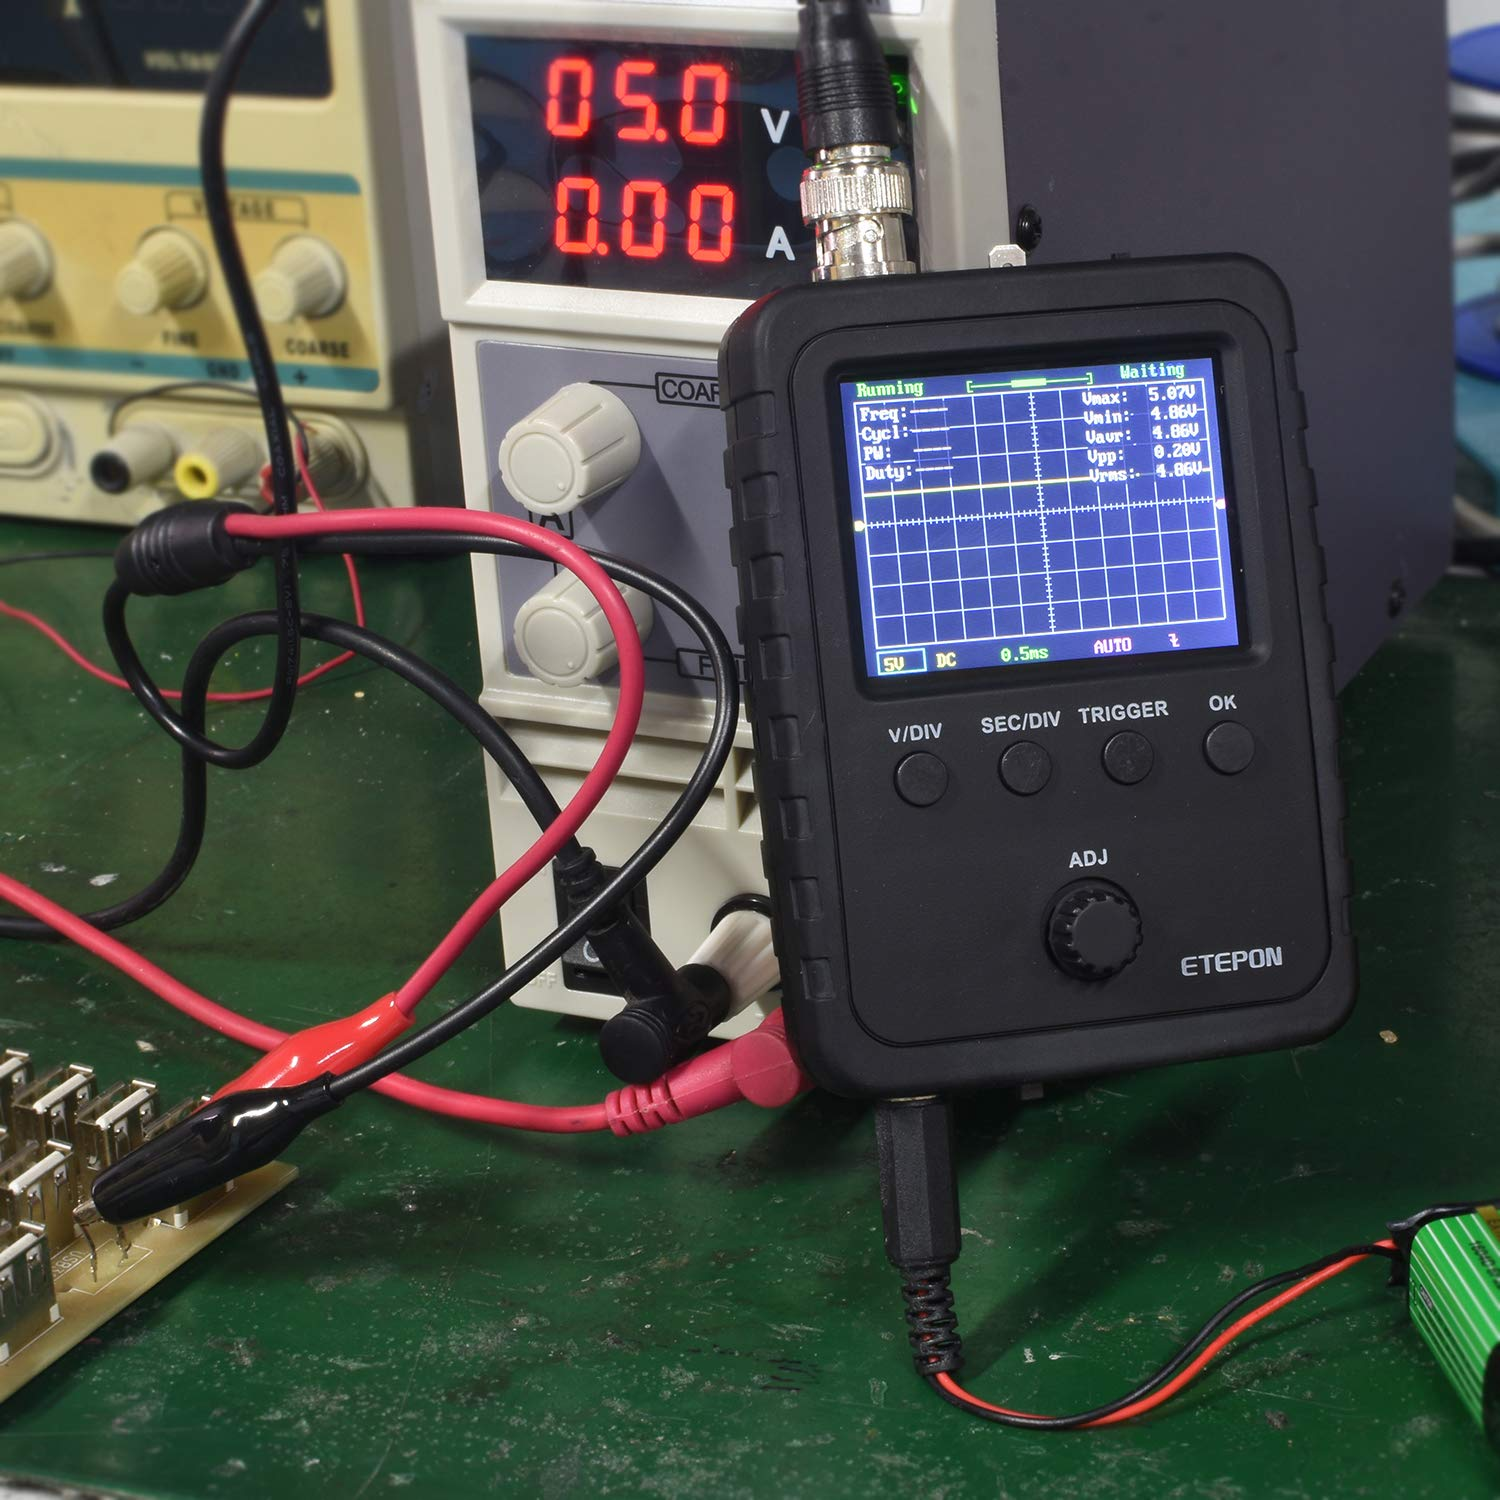 ETEPON Digital Oscilloscope/Kit with BNC-Clip Cable Probe Power Adapter Assembled Finished Machine EM001